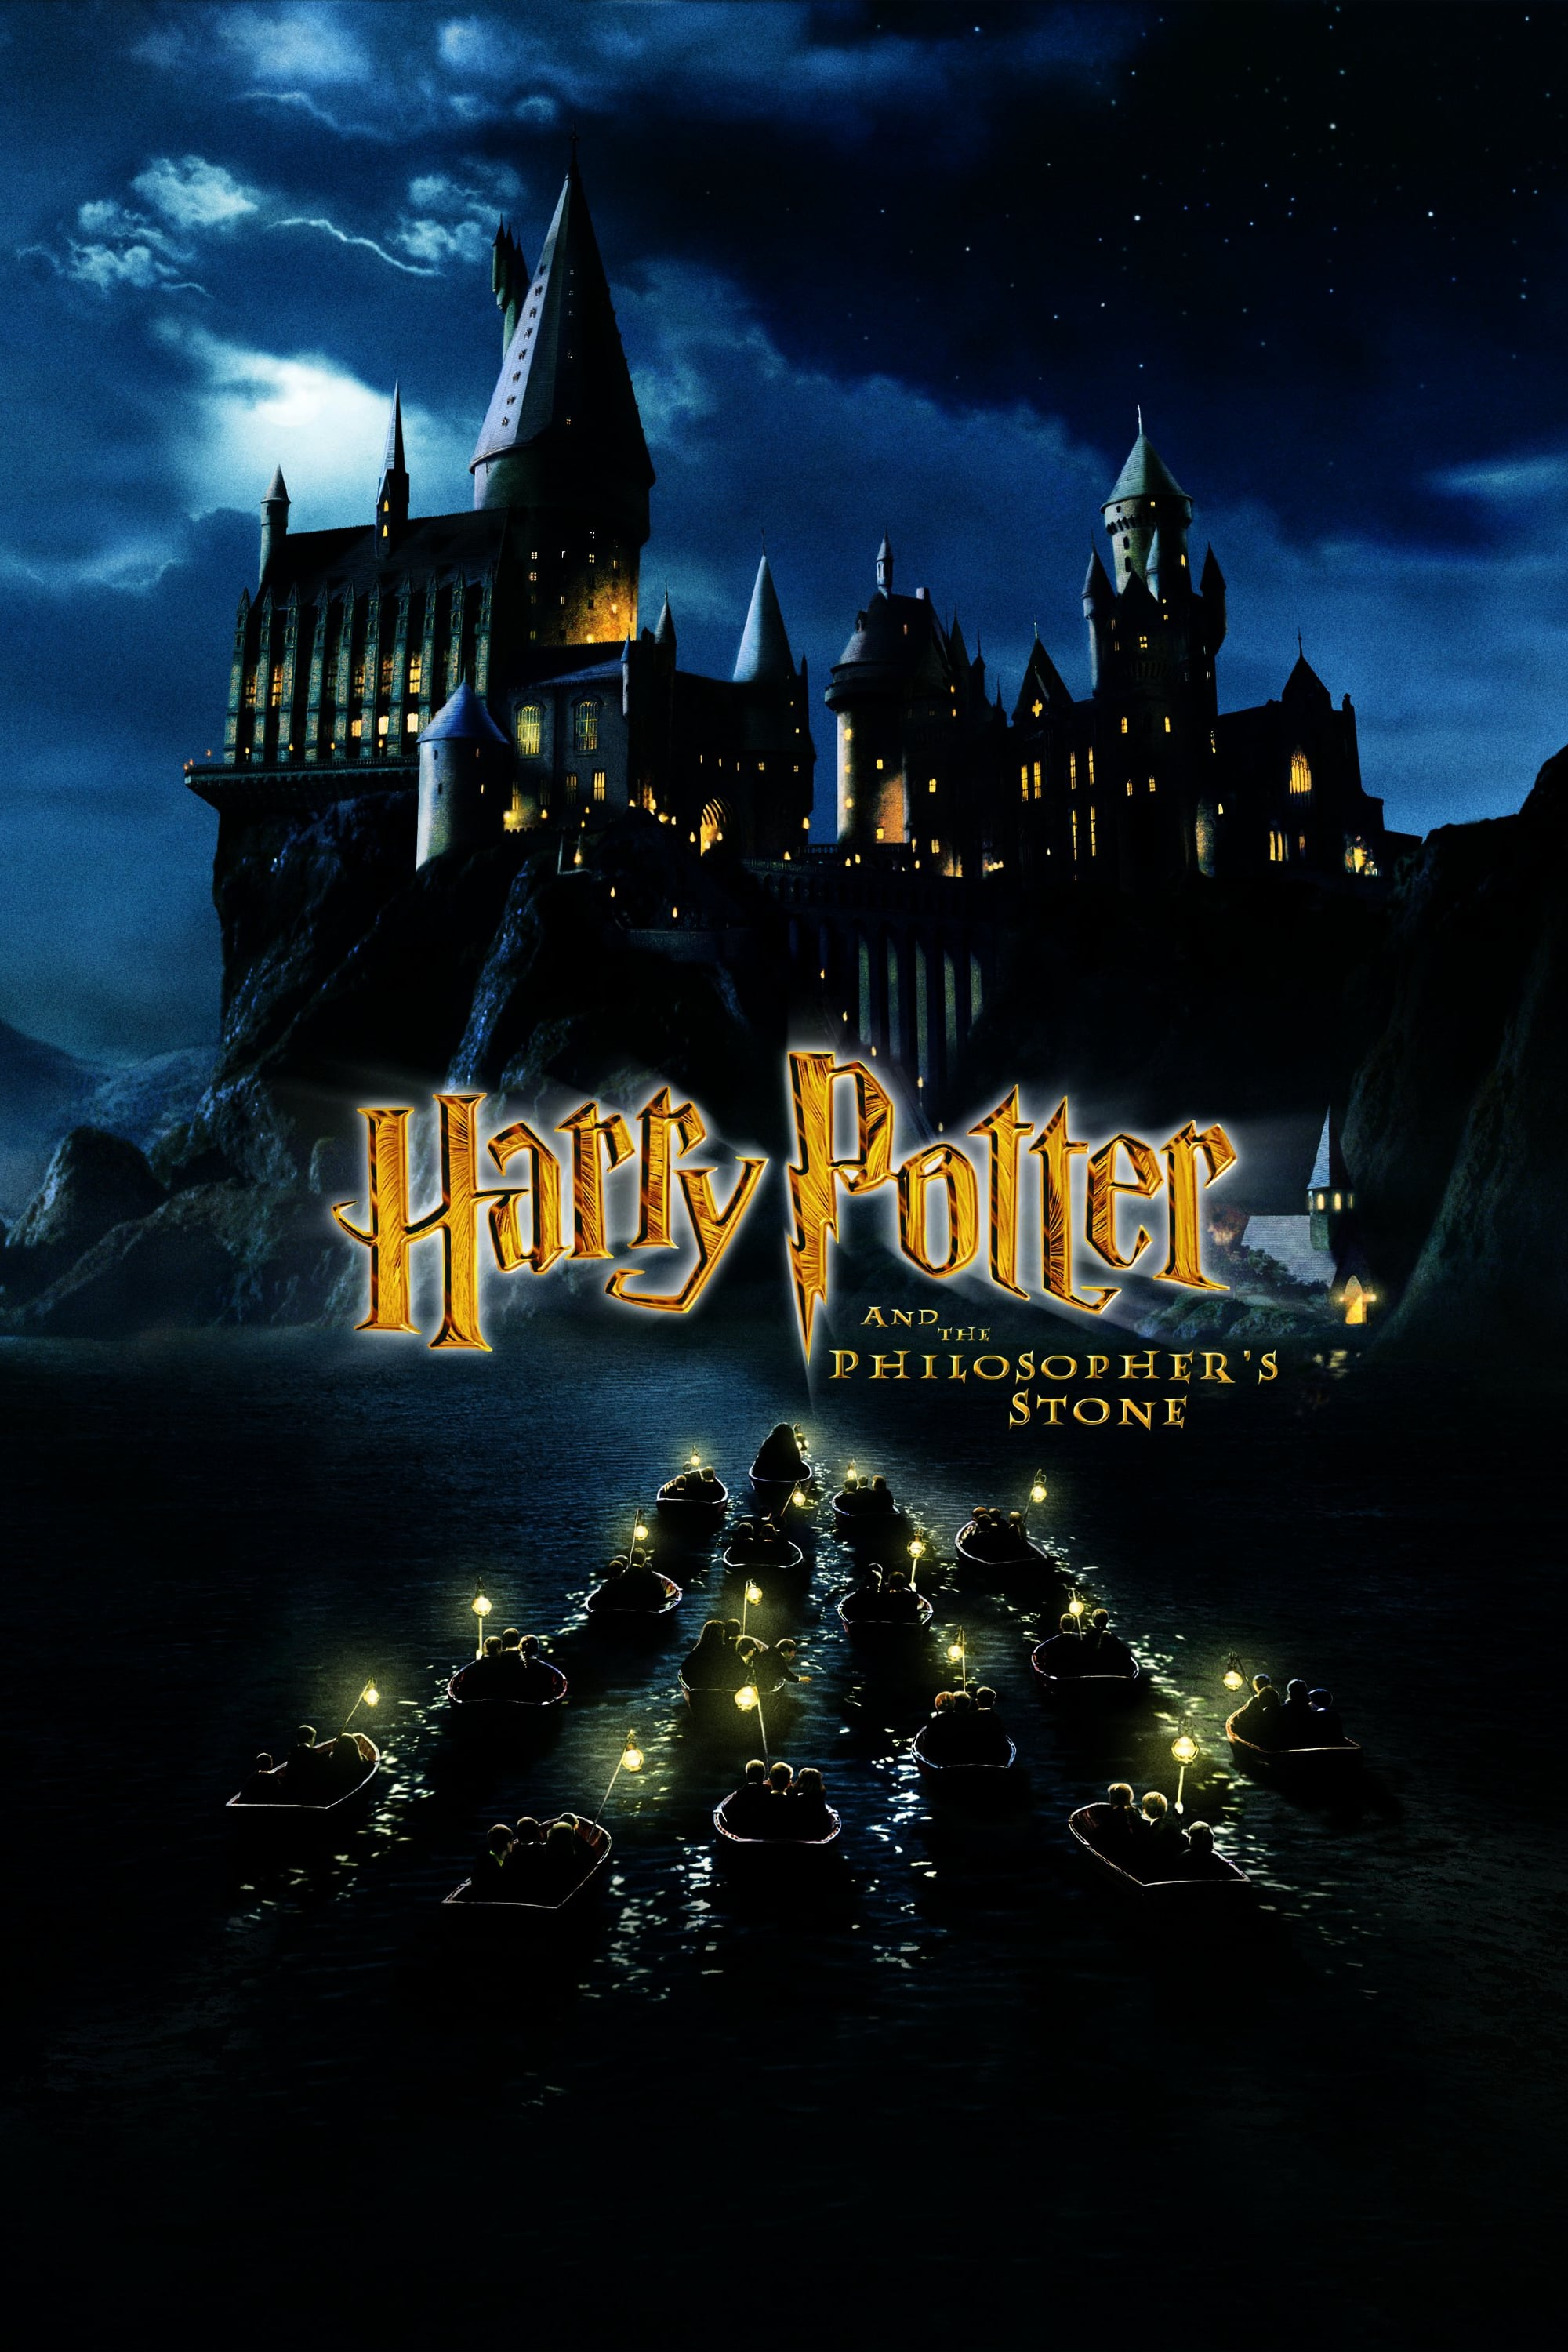 harry potter poster the philosophers stone high quality HD printable wallpapers hogwarts castle